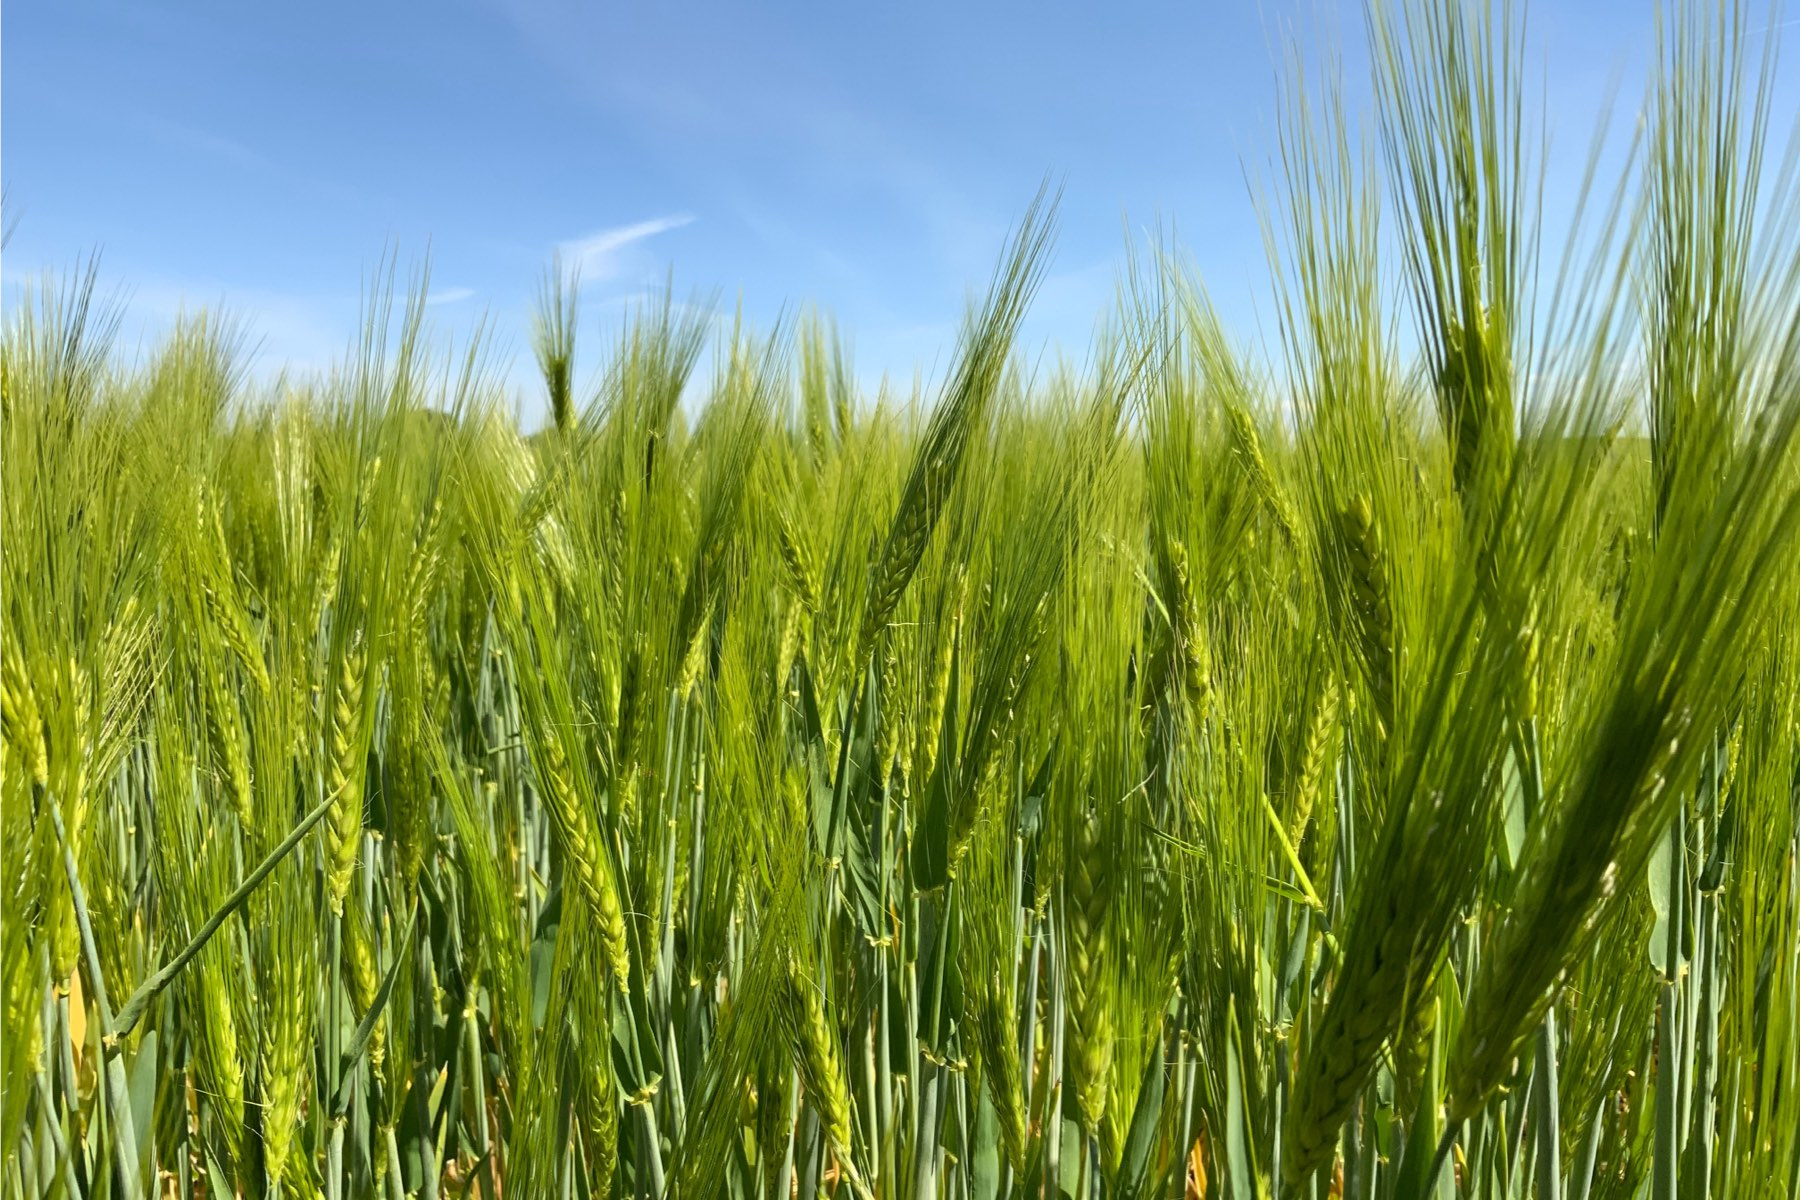 A wheat field with a blue sky